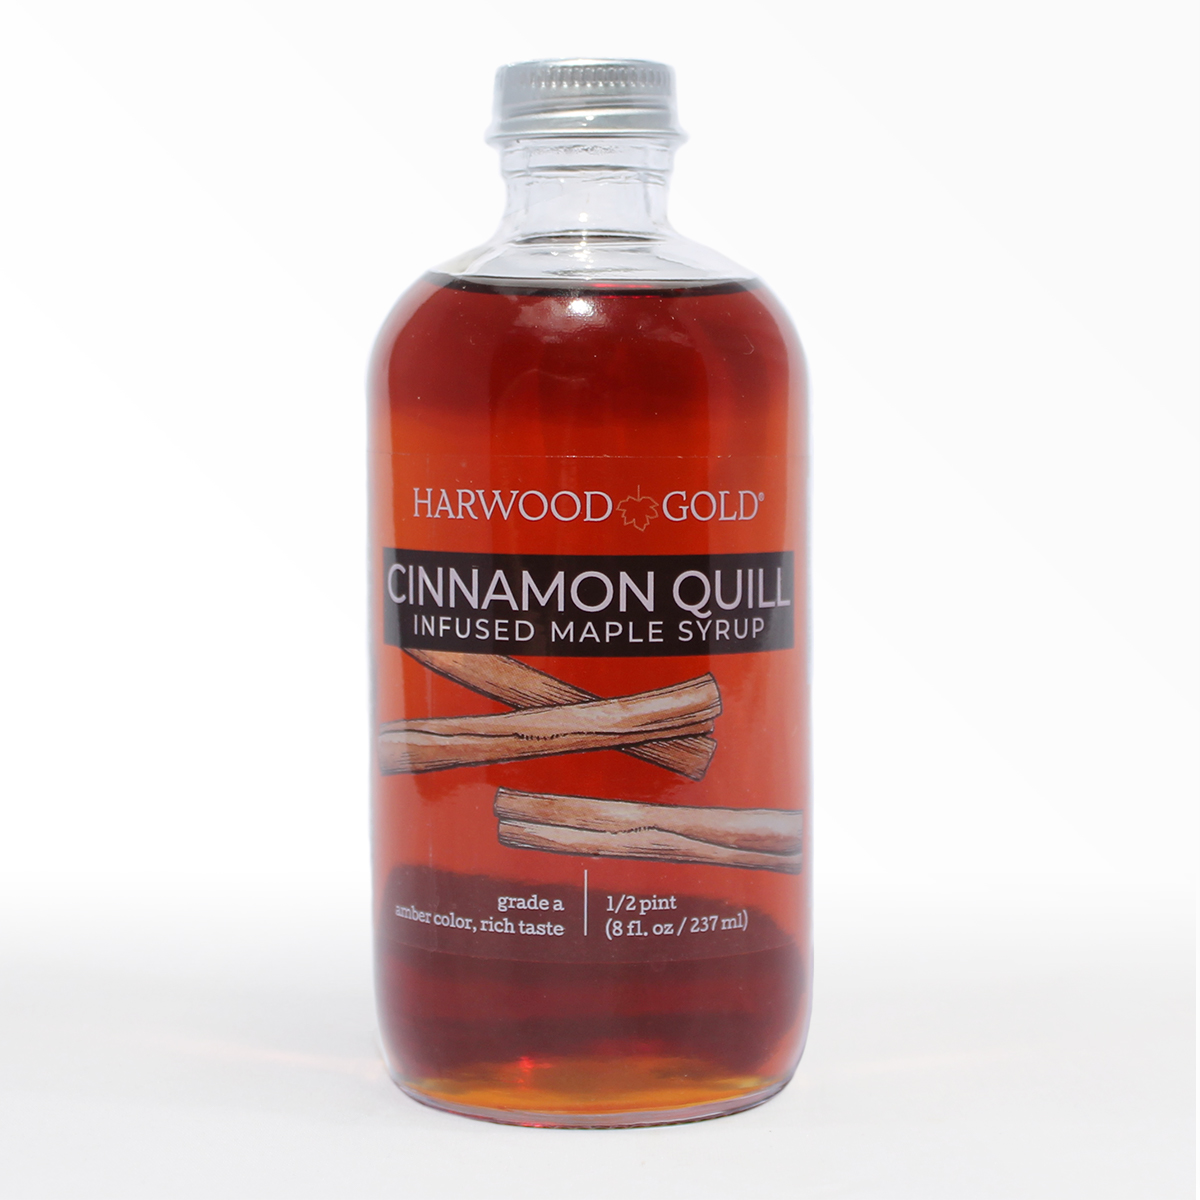 Harwood Gold Cinnamon Quill Infused Maple Syrup